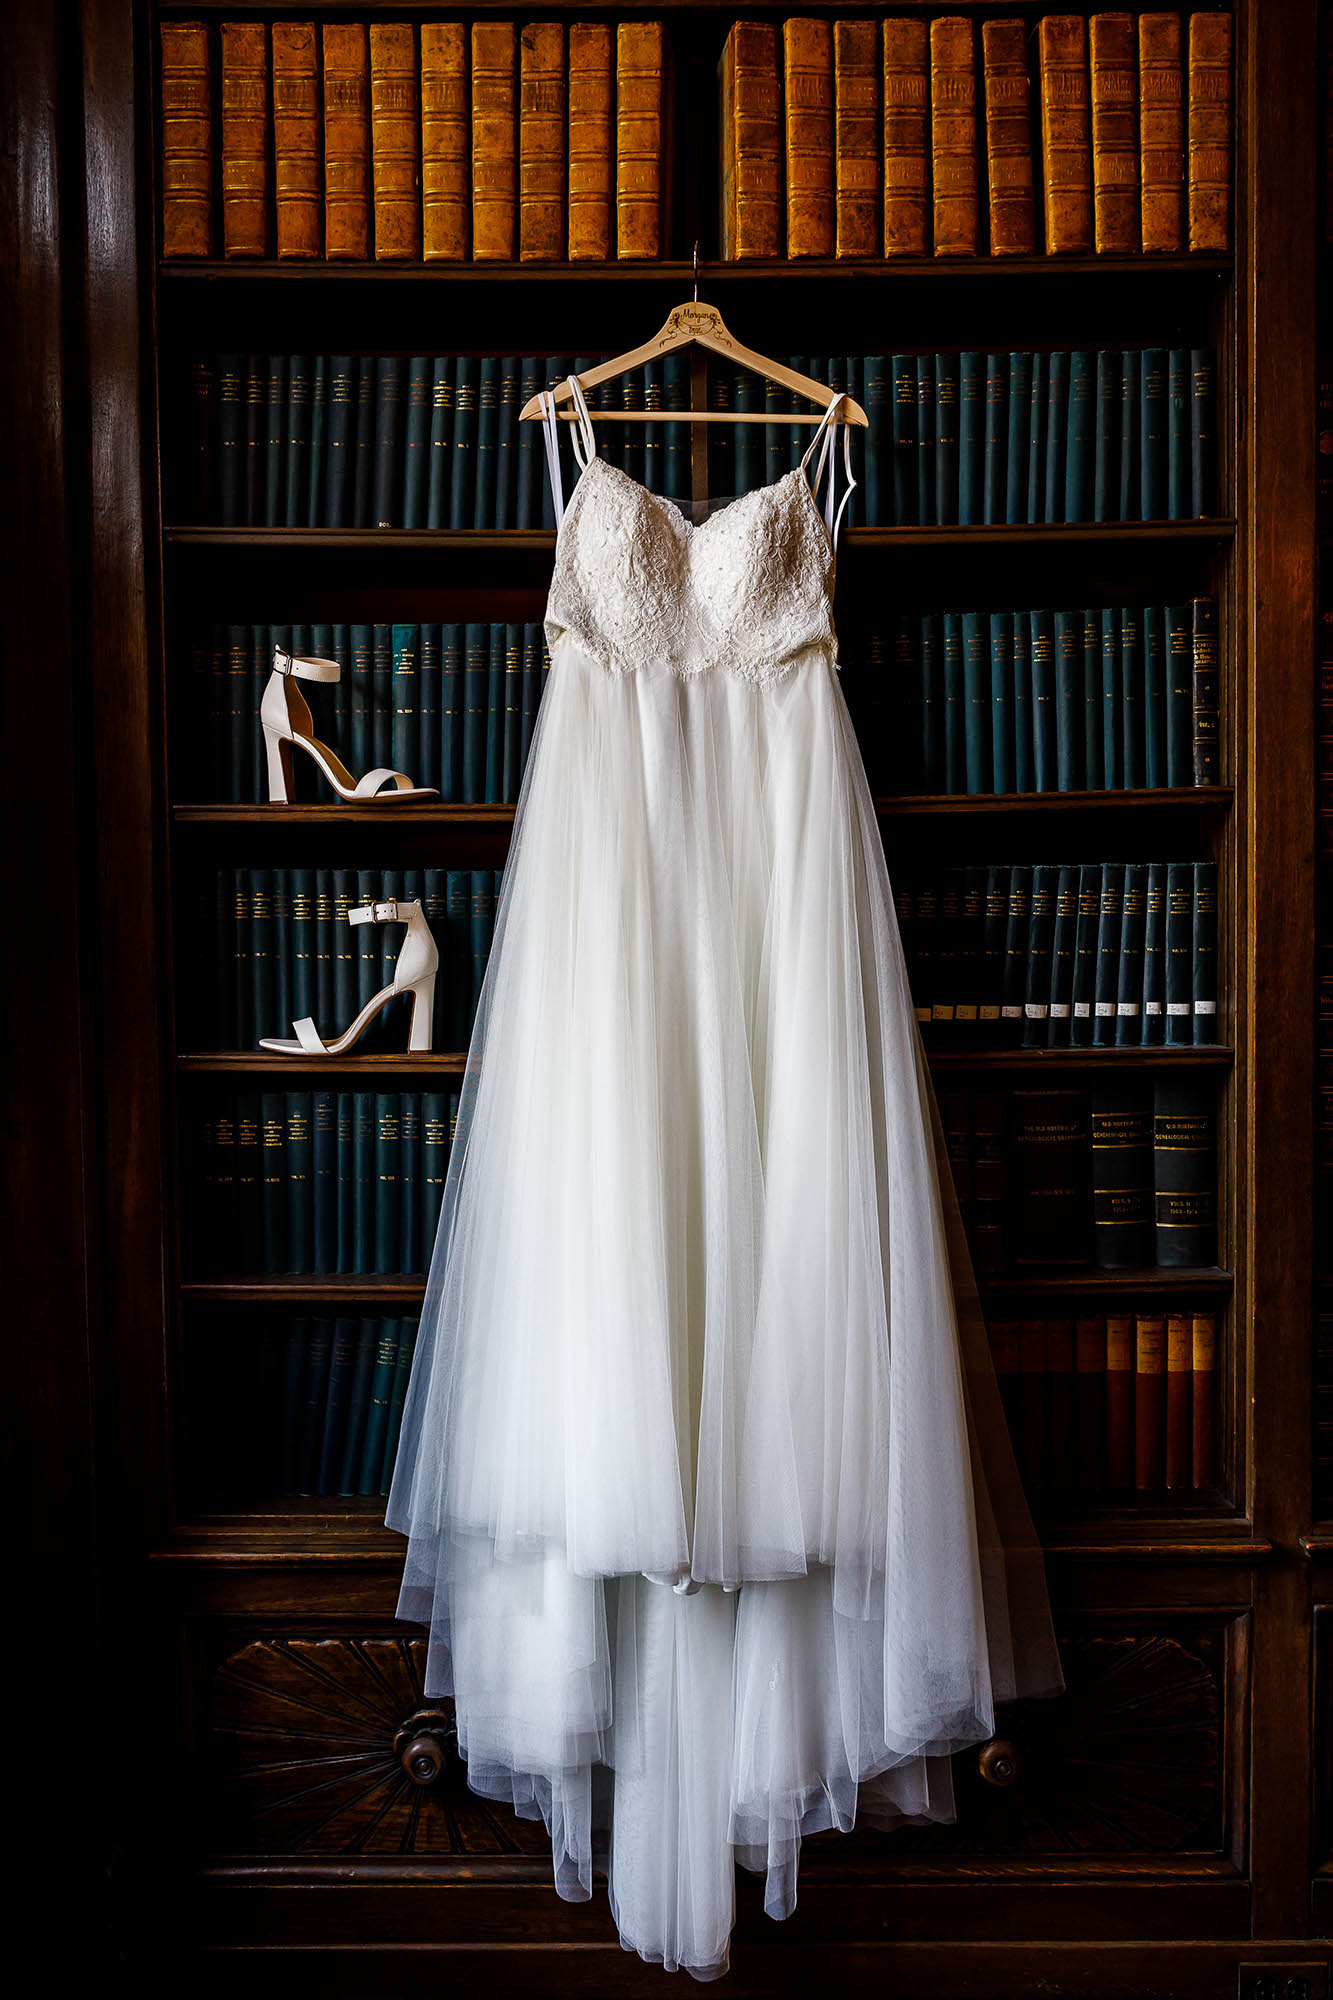 The bride's shoes stacked and her wedding gown hung from a bookshelf at the Western Reserve Historical Society in downtown Cleveland, Ohio.